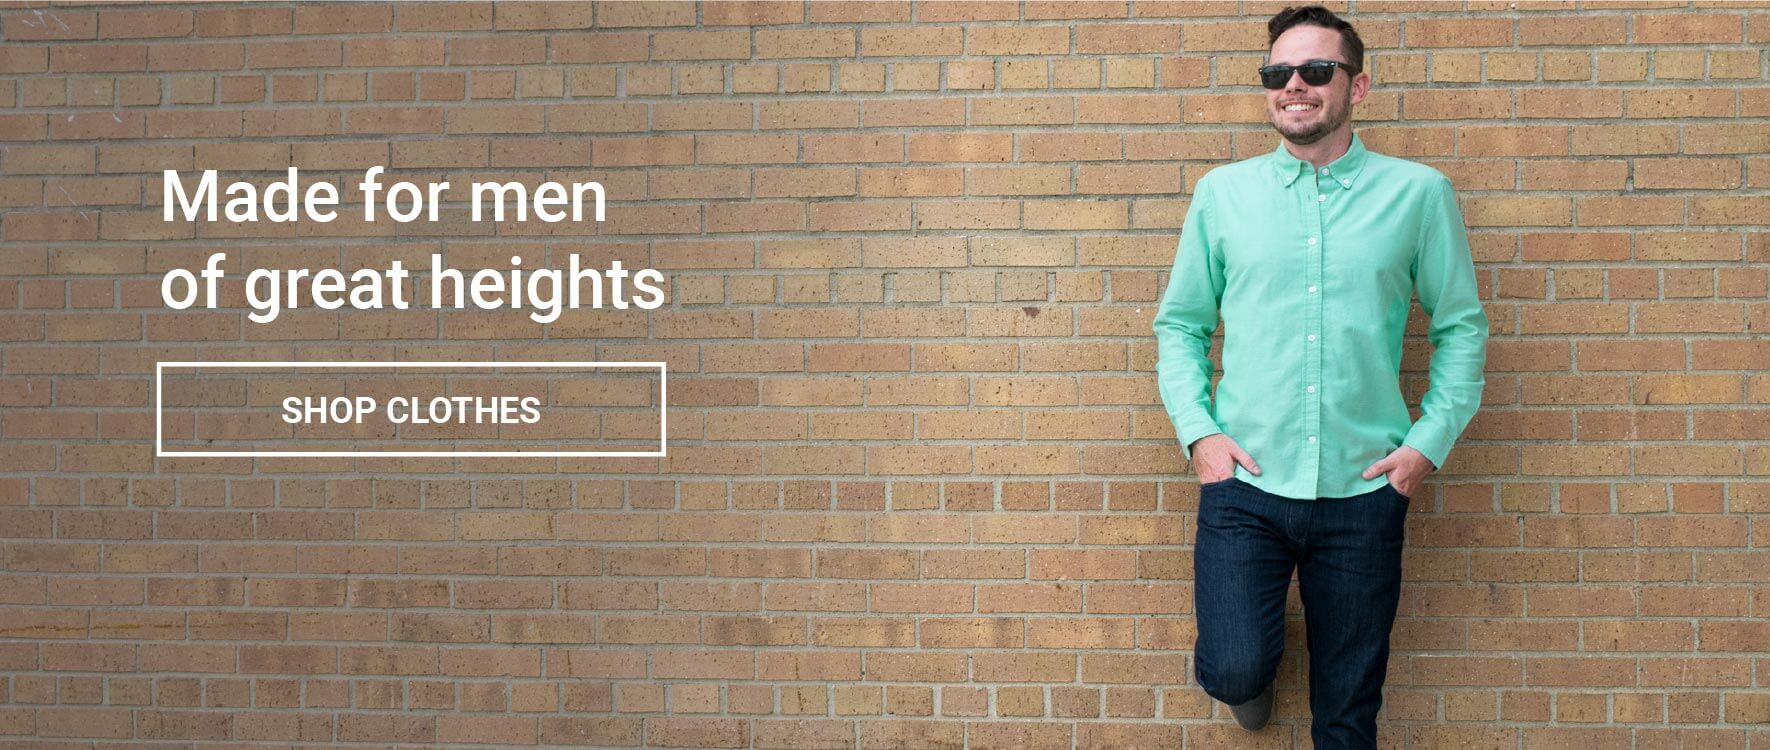 Made for men of great heights- Shop clothes